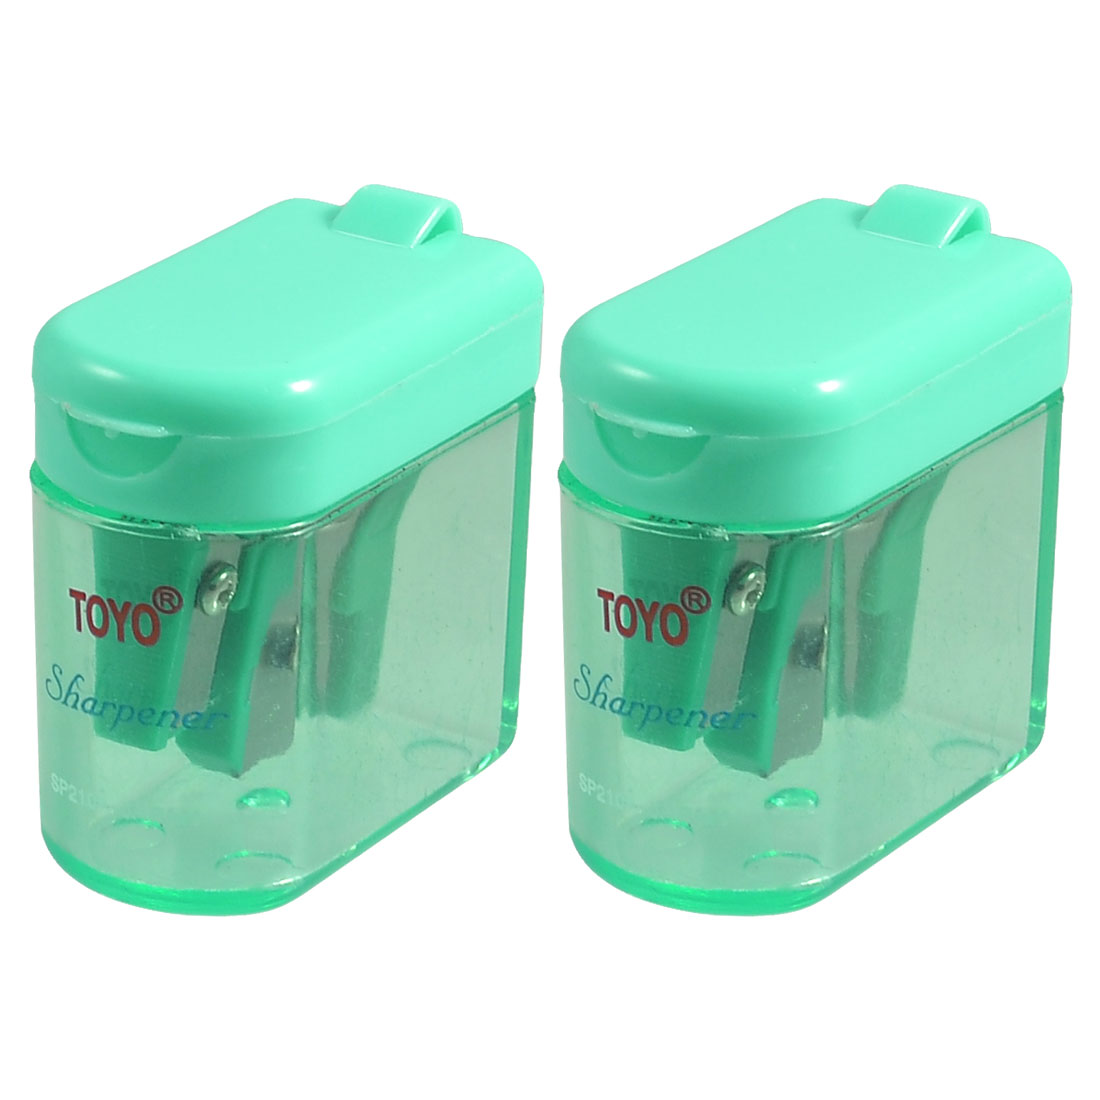 Green Clear Plastic Shell Double Holes Pencil Sharpener 2 Pcs